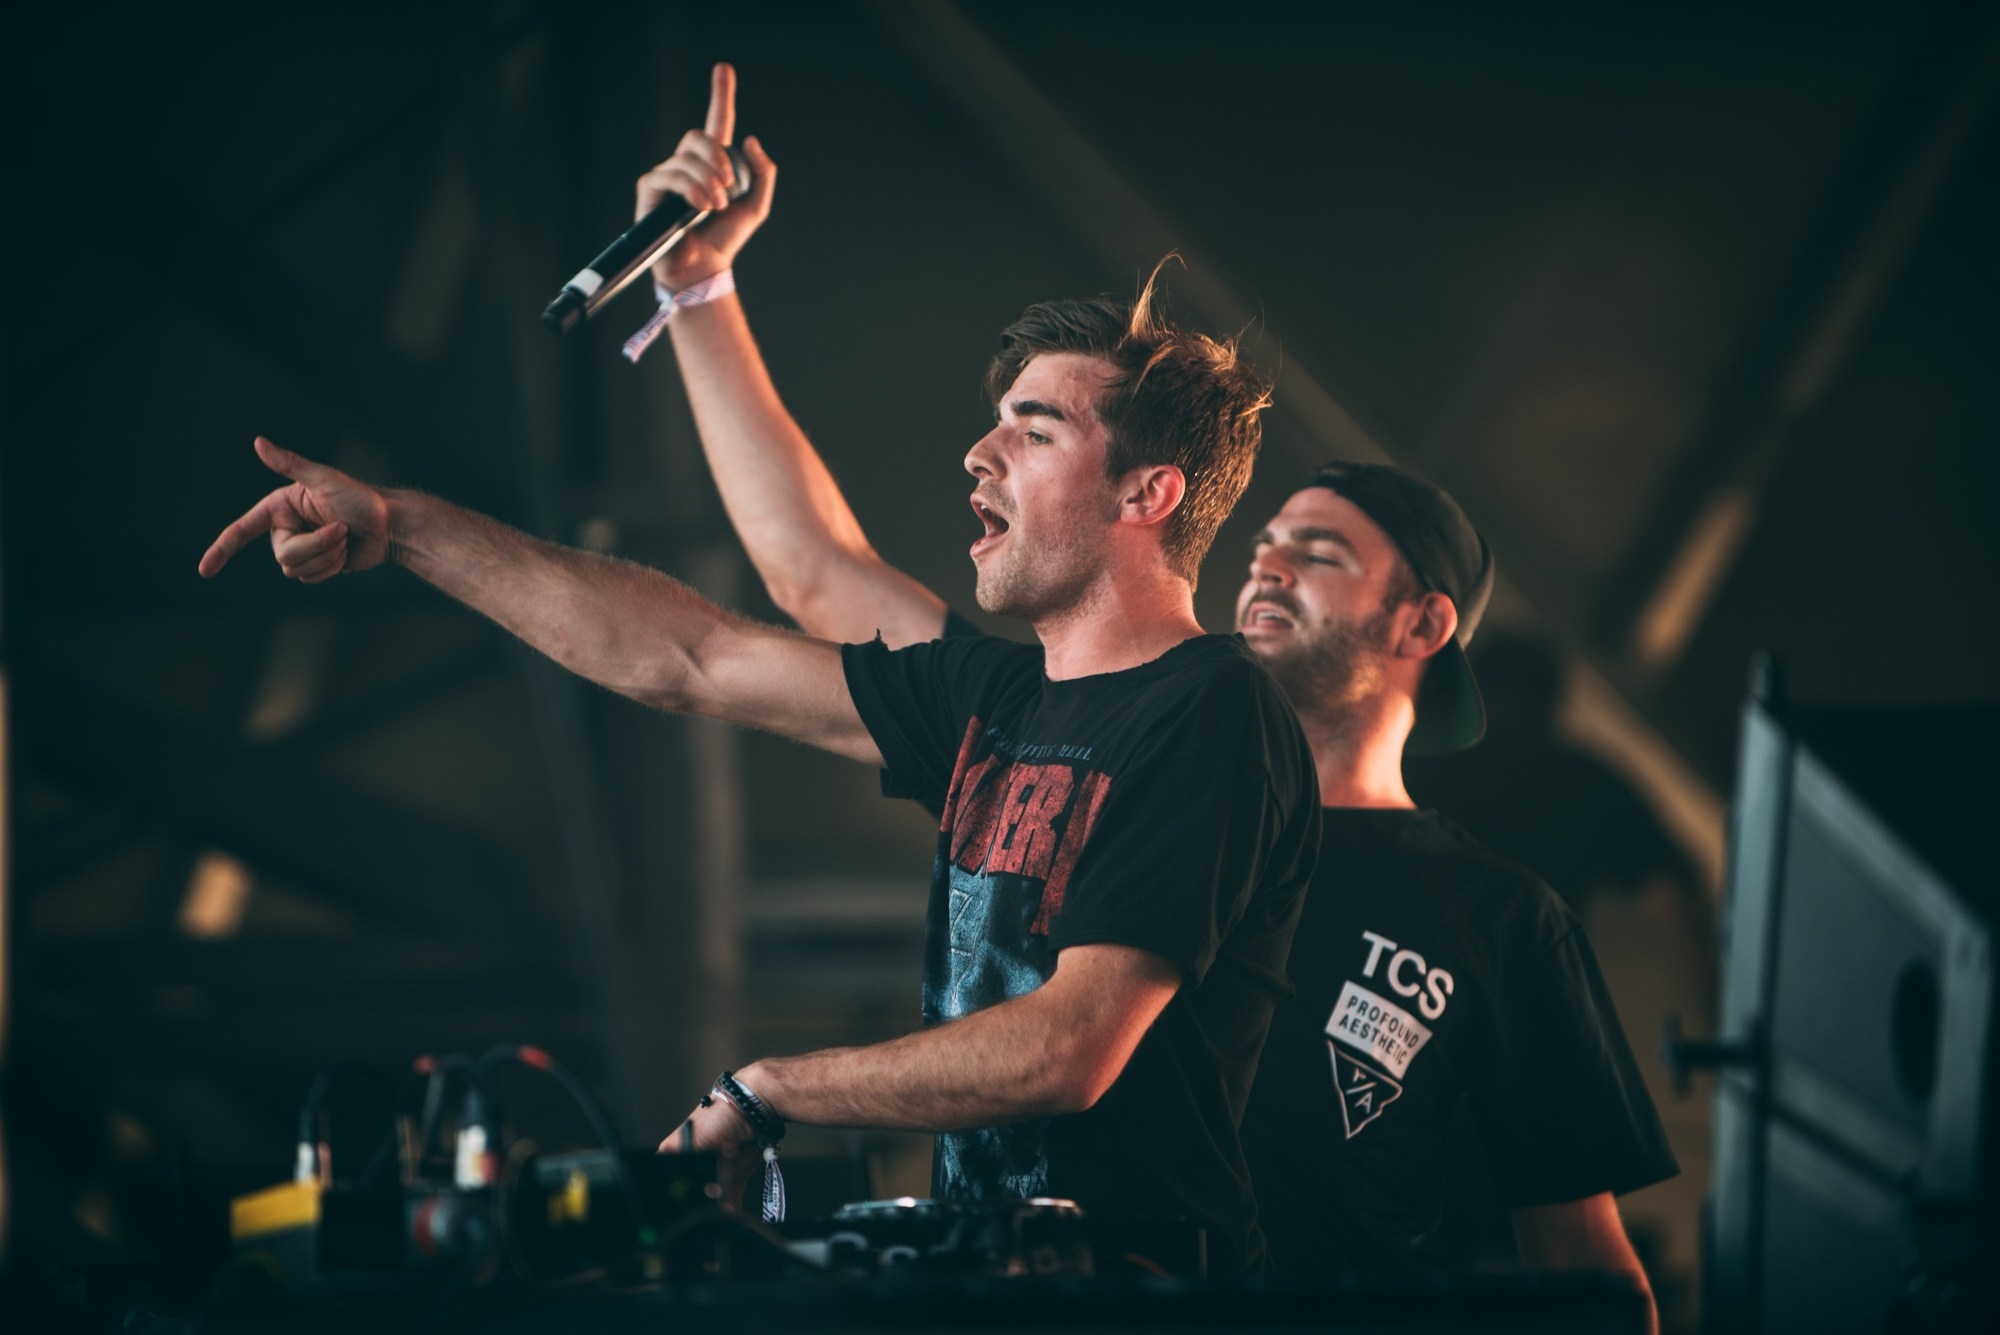 Interview: Alex Pall of The Chainsmokers talks production style and party-rock anthems